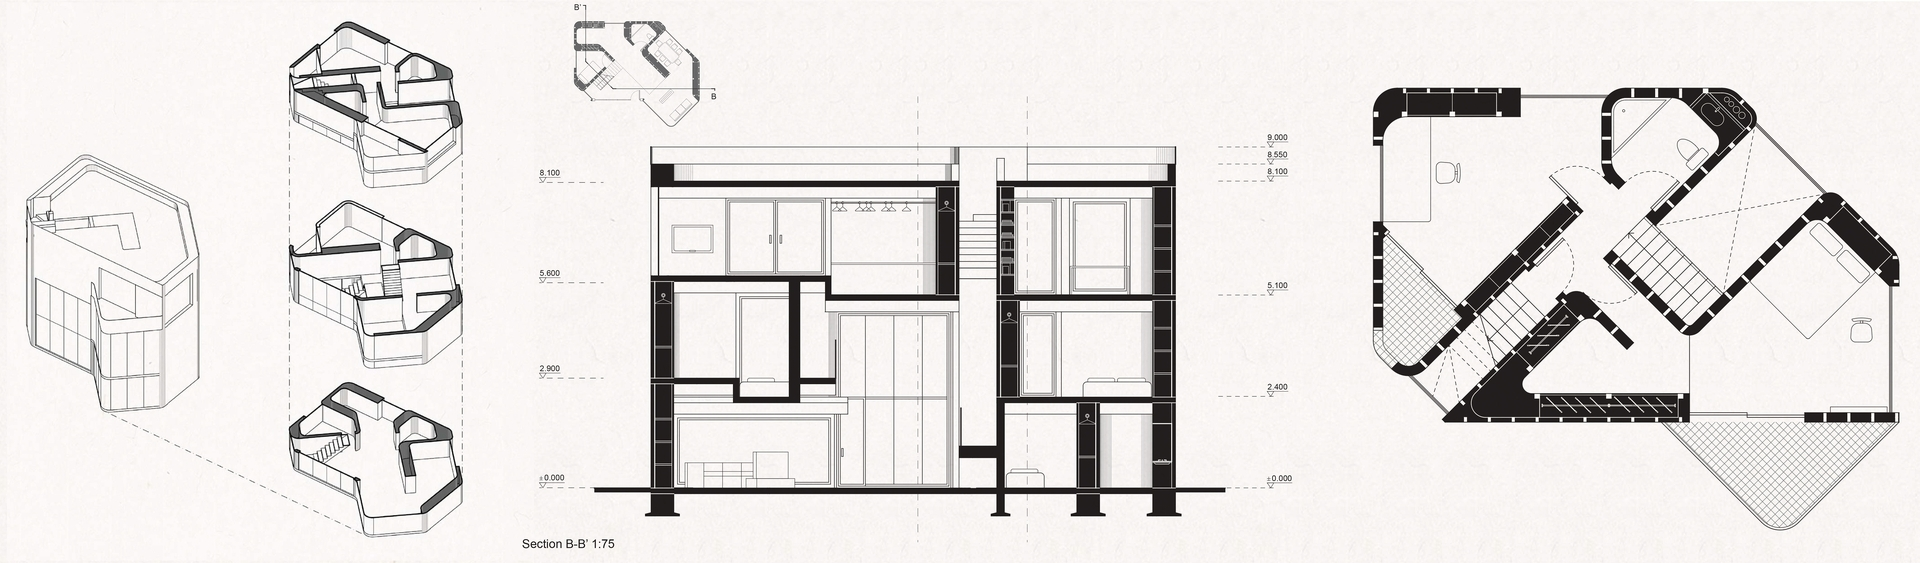 Enlarge Photo: Ideas for the Village: Rethinking Village House typologies in Hong Kong 10